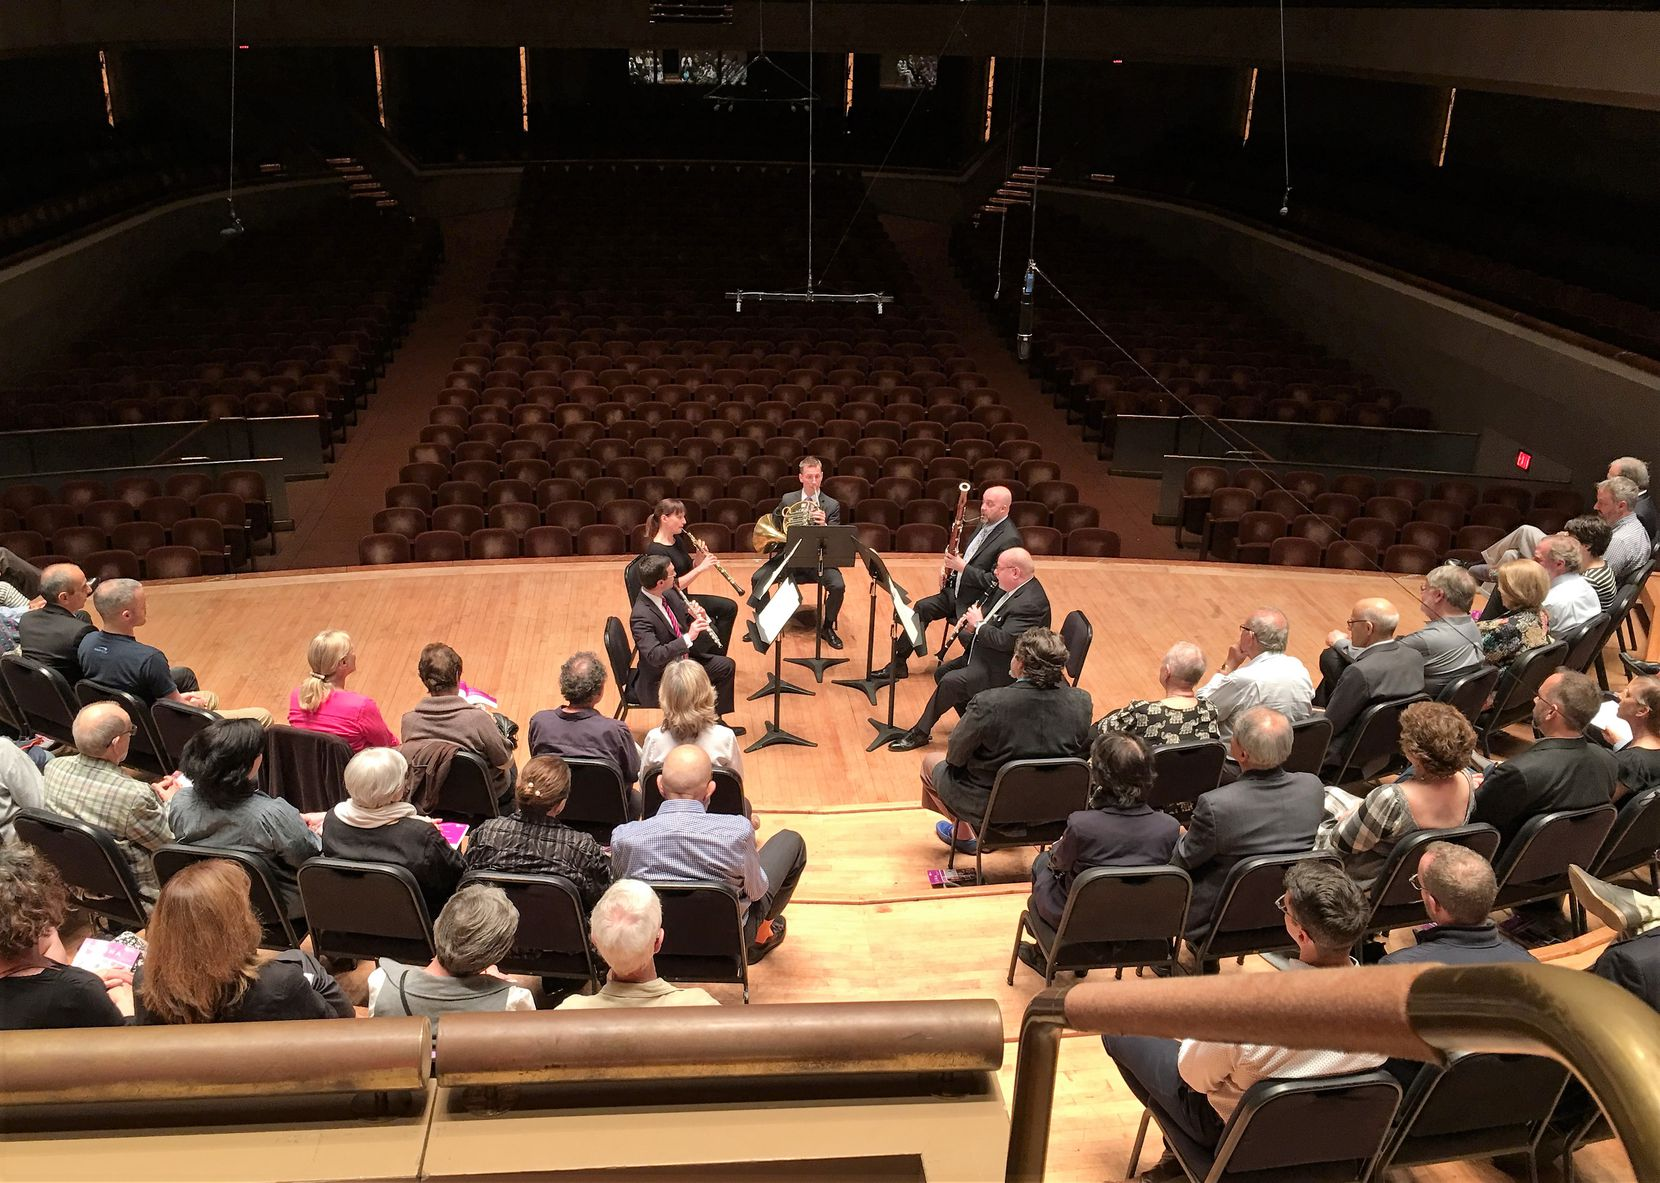 View from the Meyerson Symphony Center's choral terrace, as Dallas Symphony Orchestra musicians David Buck (flute), Erin Hannigan (oboe), David Cooper (horn), Ted Soluri (bassoon) and Gregory Raden (clarinet) perform a wind quintet arrangement of Mozart's Magic Flute Overture on April 8, 2019. (Scott Cantrell/Special Contributor)